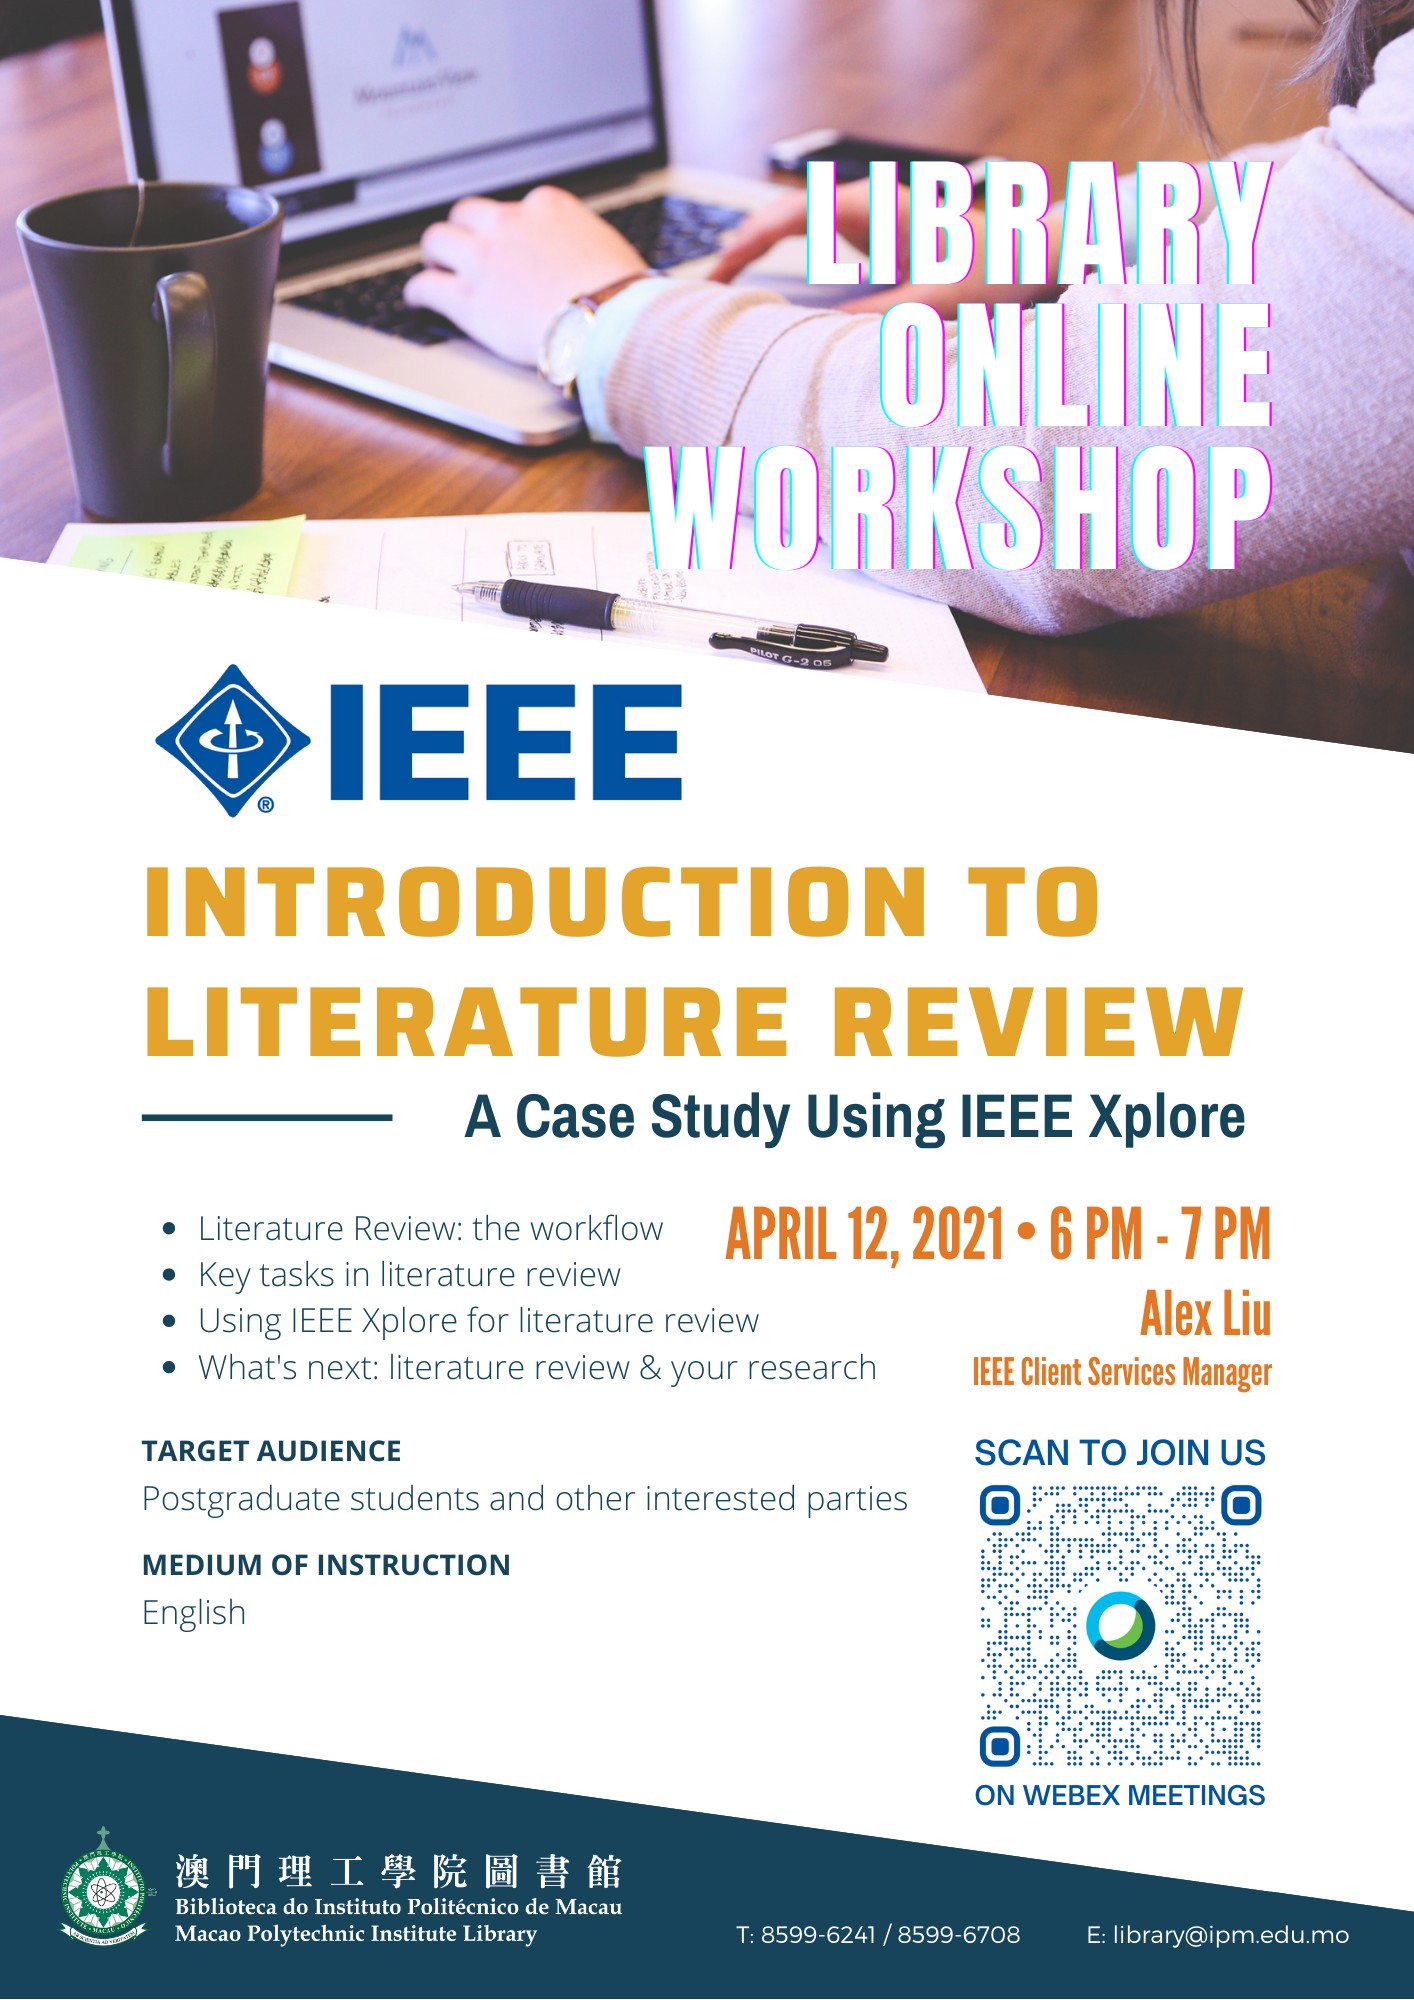 Introduction to Literature Review: A Case Study Using IEEE Xplore